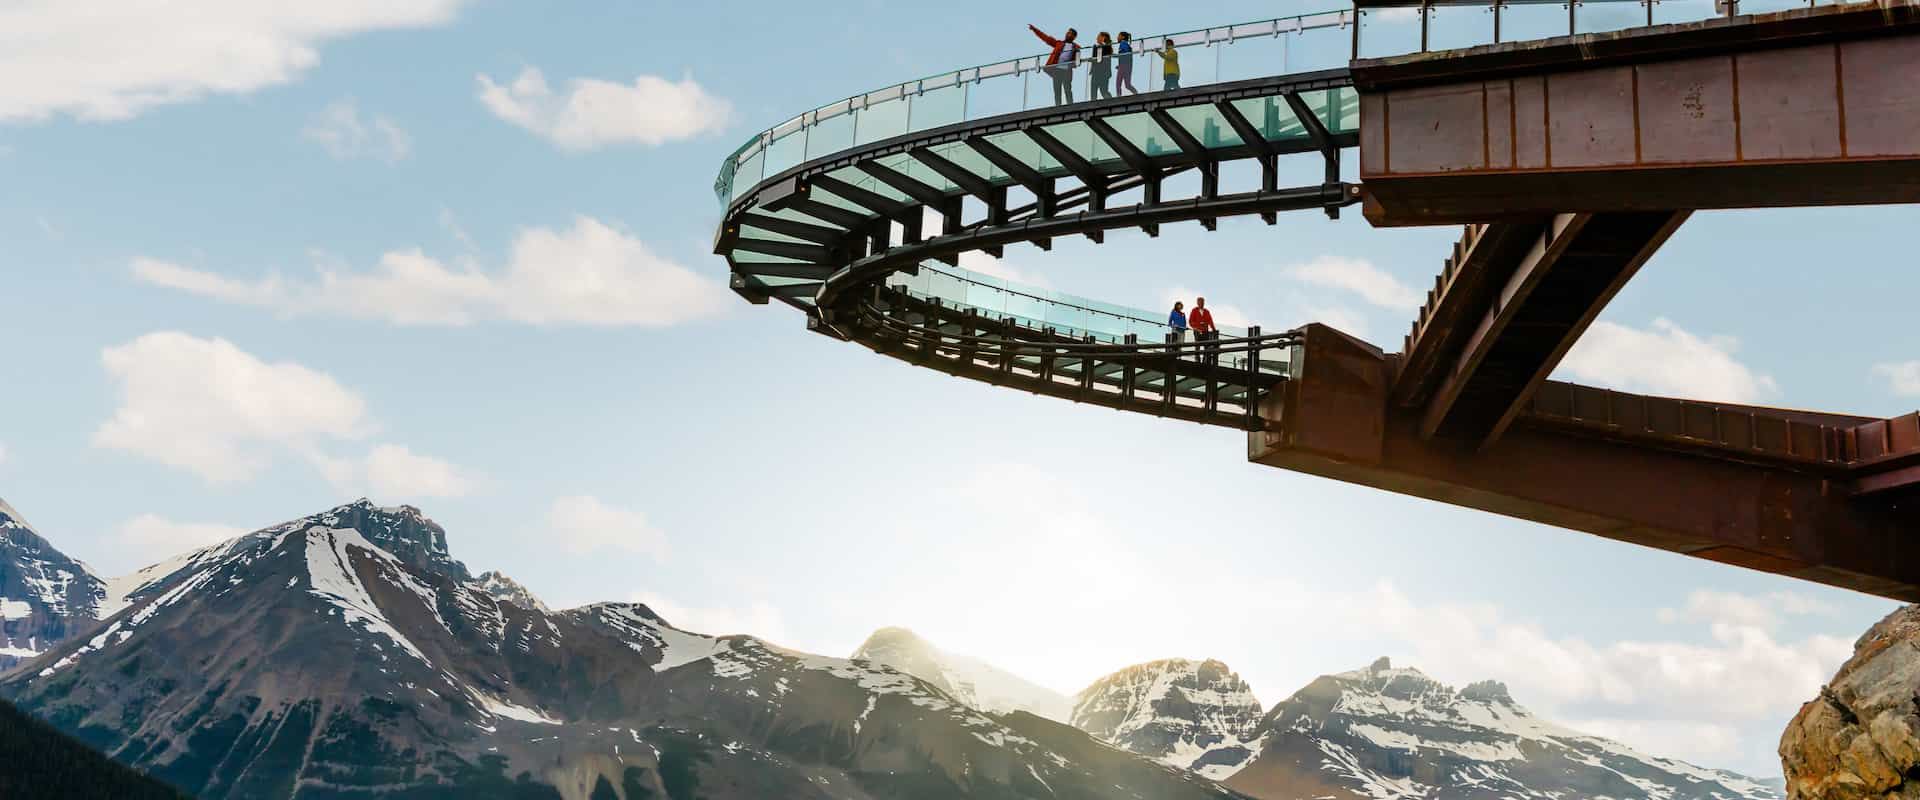 Walk on the glass floor Glacier Skywalk on the Columbia Icefields Parkway Tour